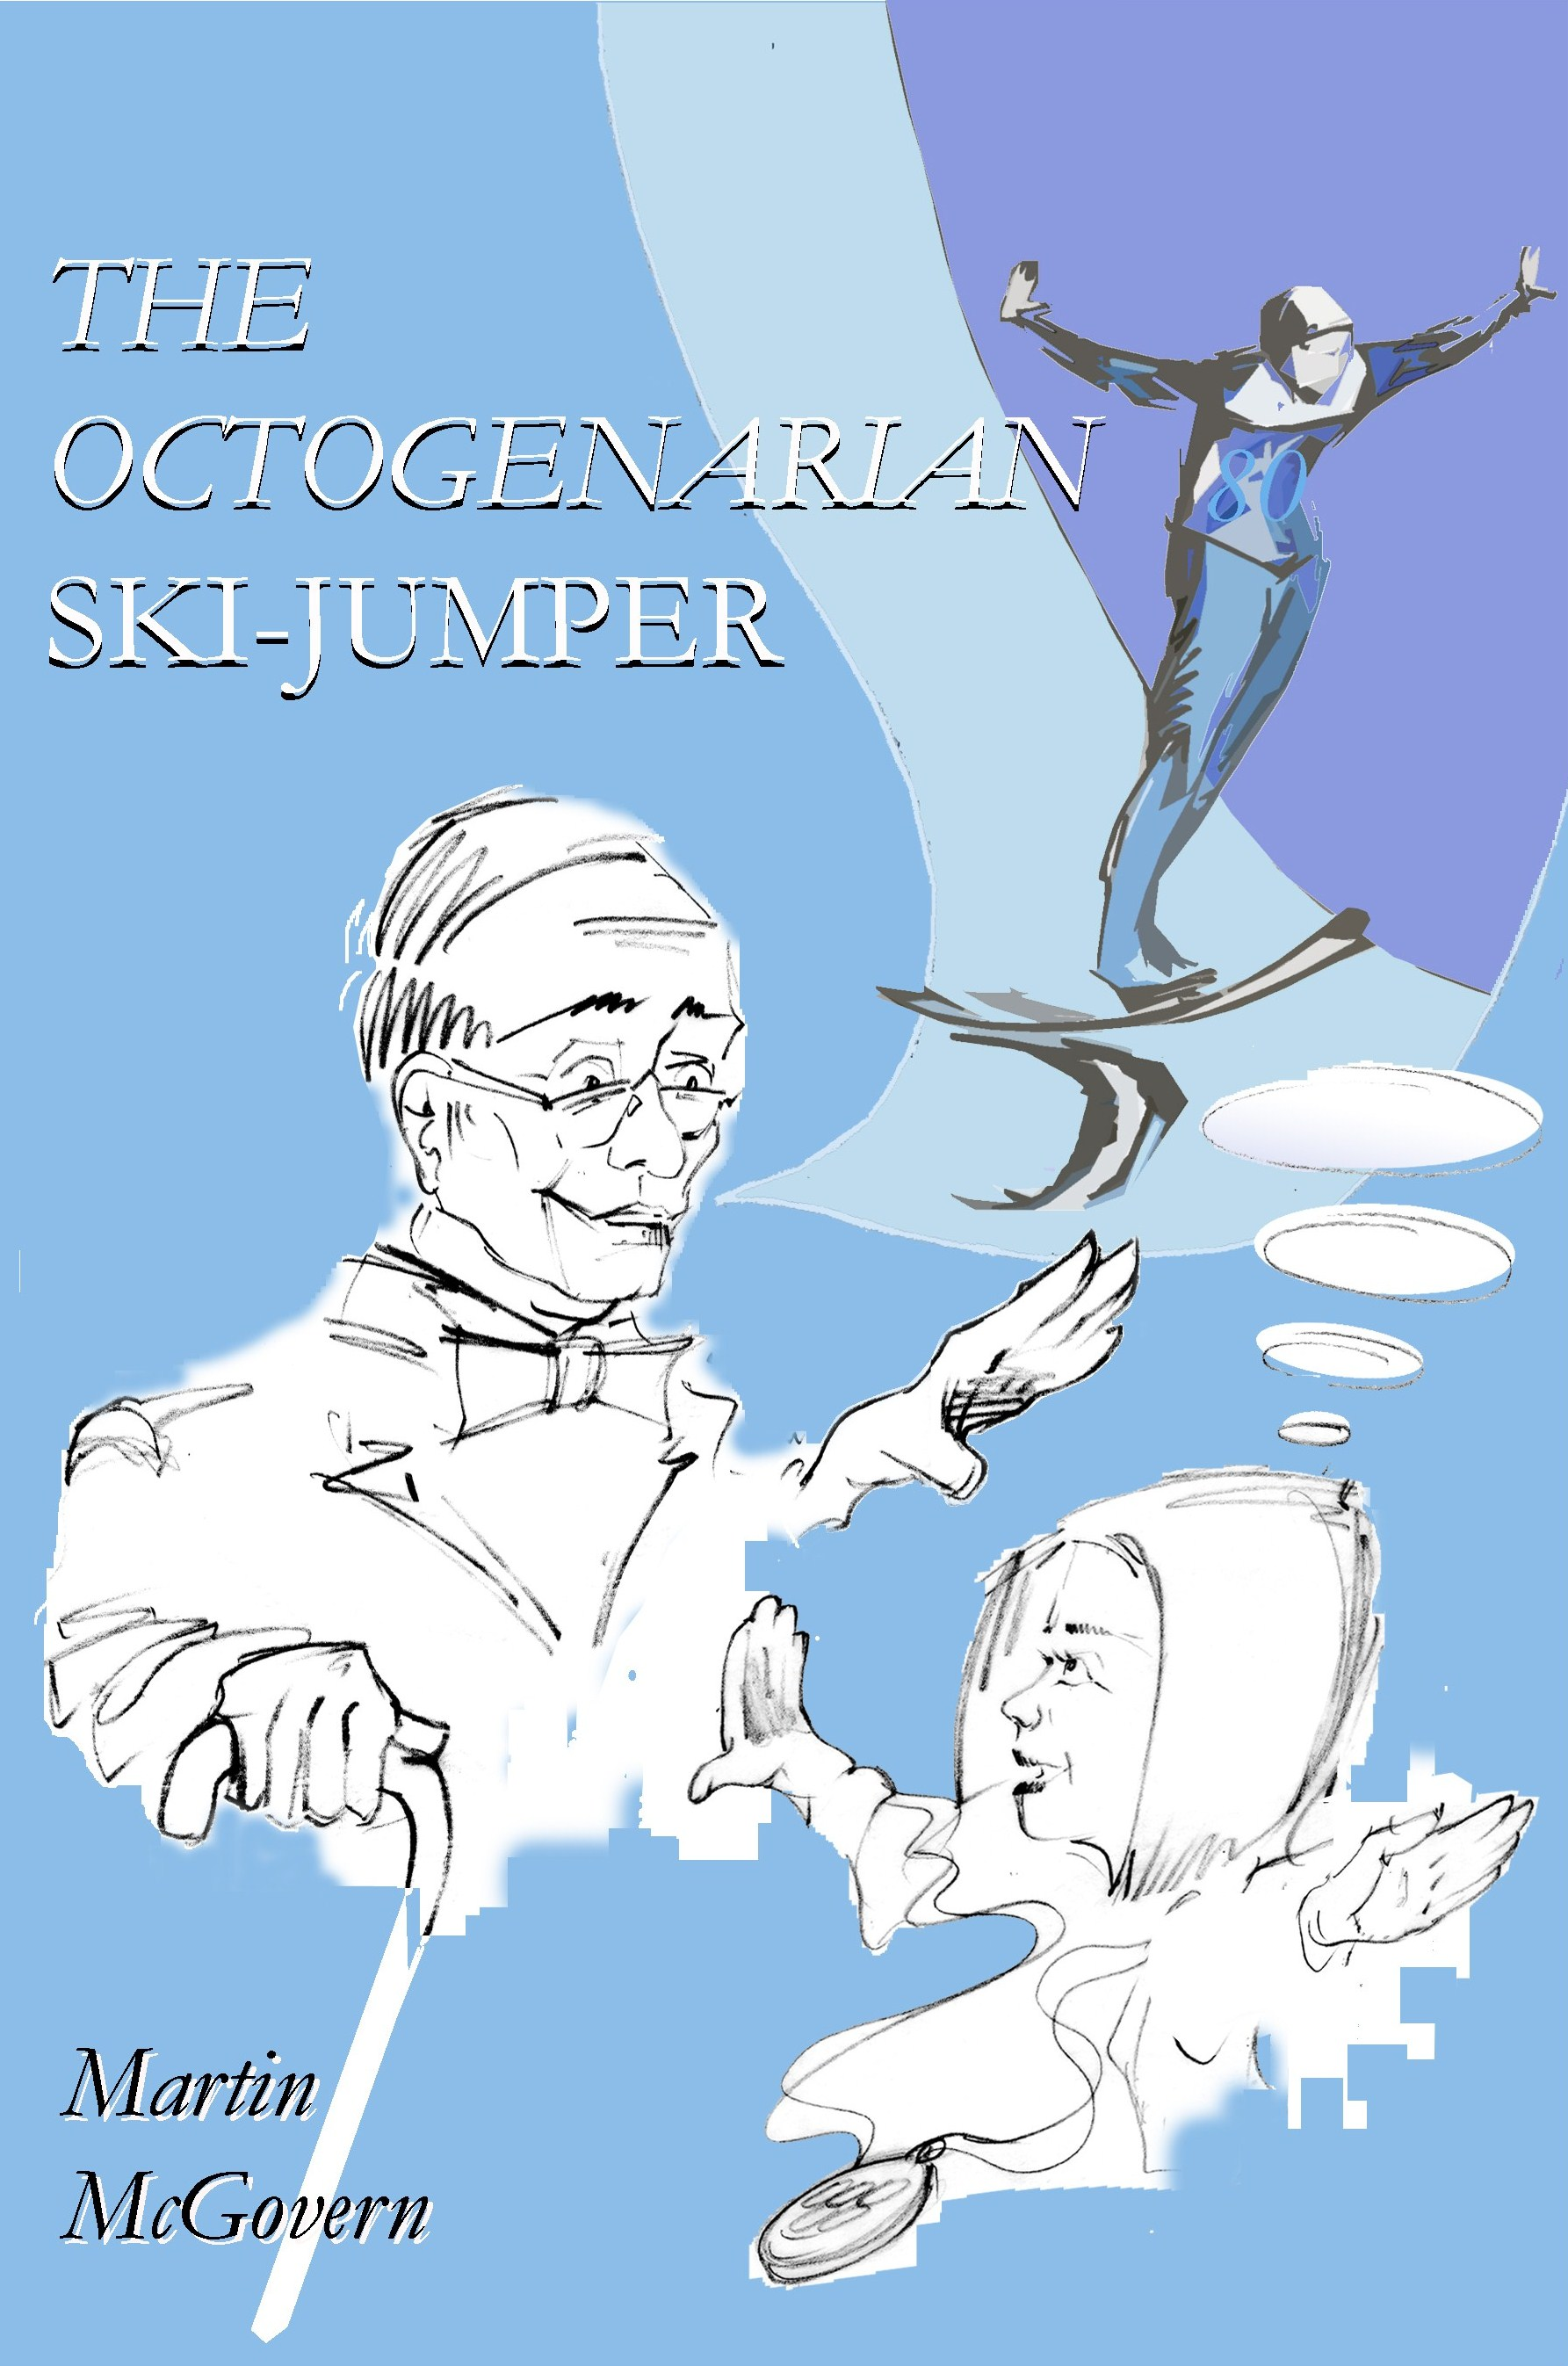 Age 20 - The Octogenarian Ski-jumper